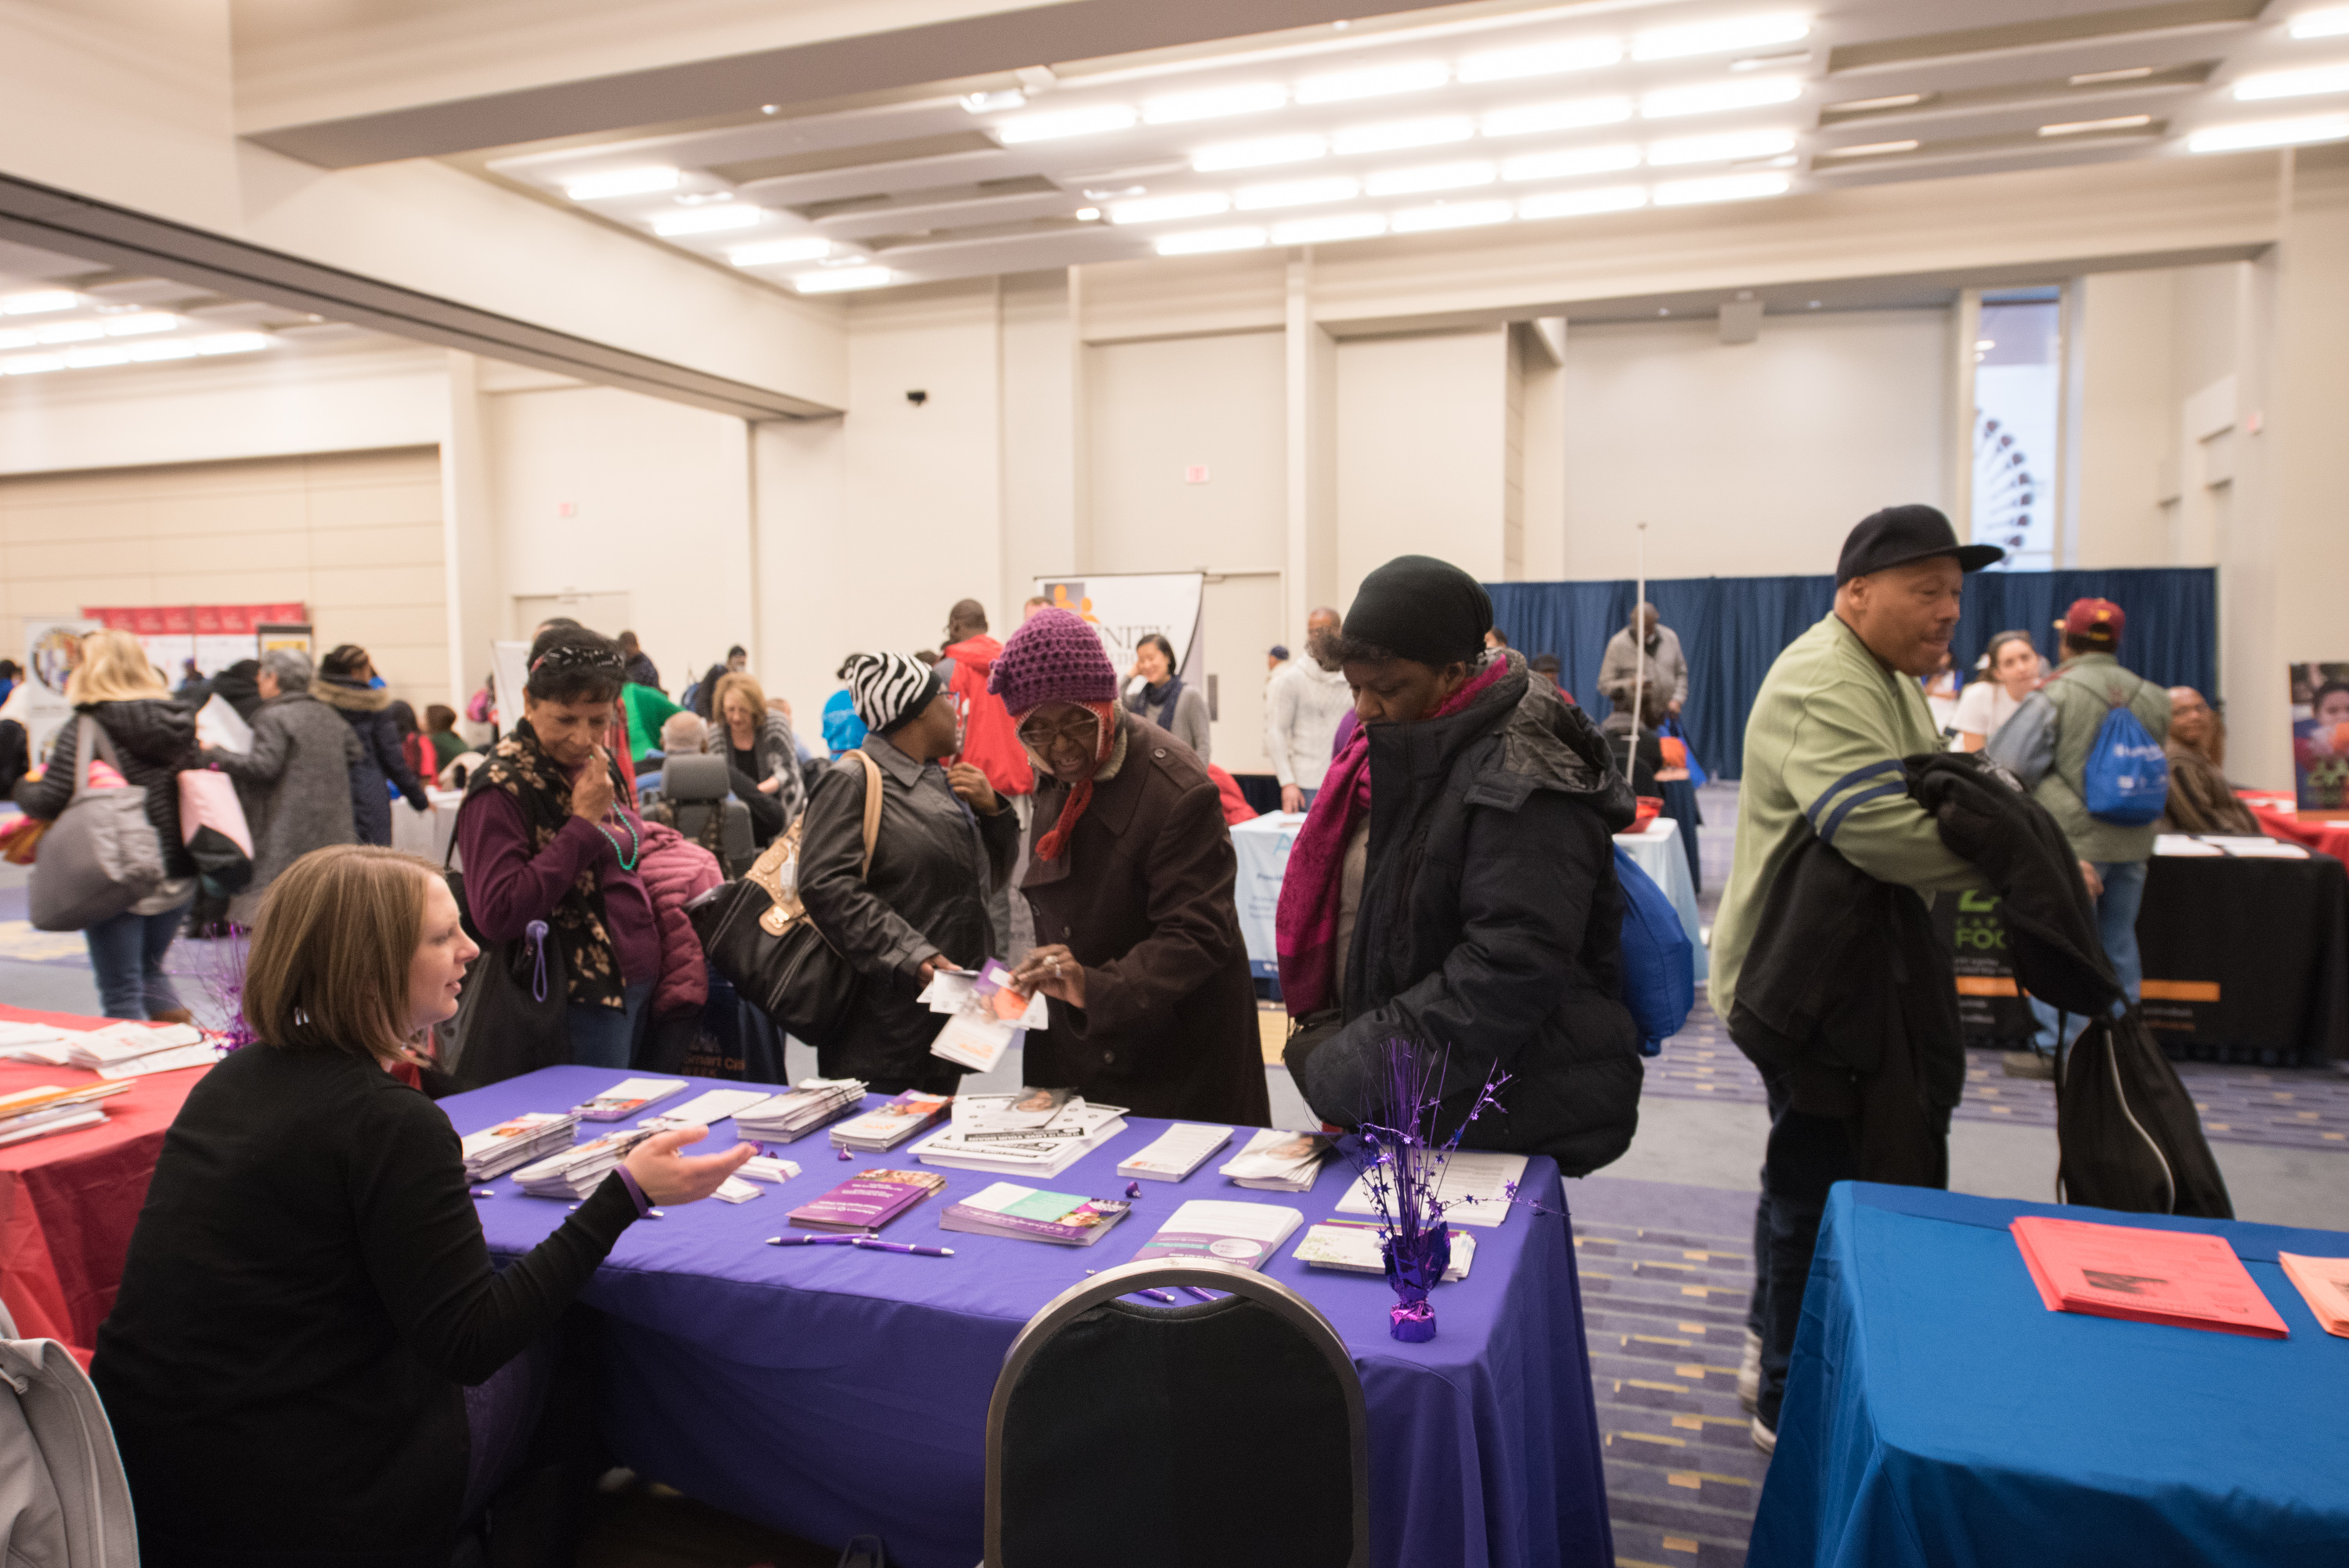 City residents in need also attend a health fair where they receive free screenings and flu shots. (Image: Courtesy Events DC)